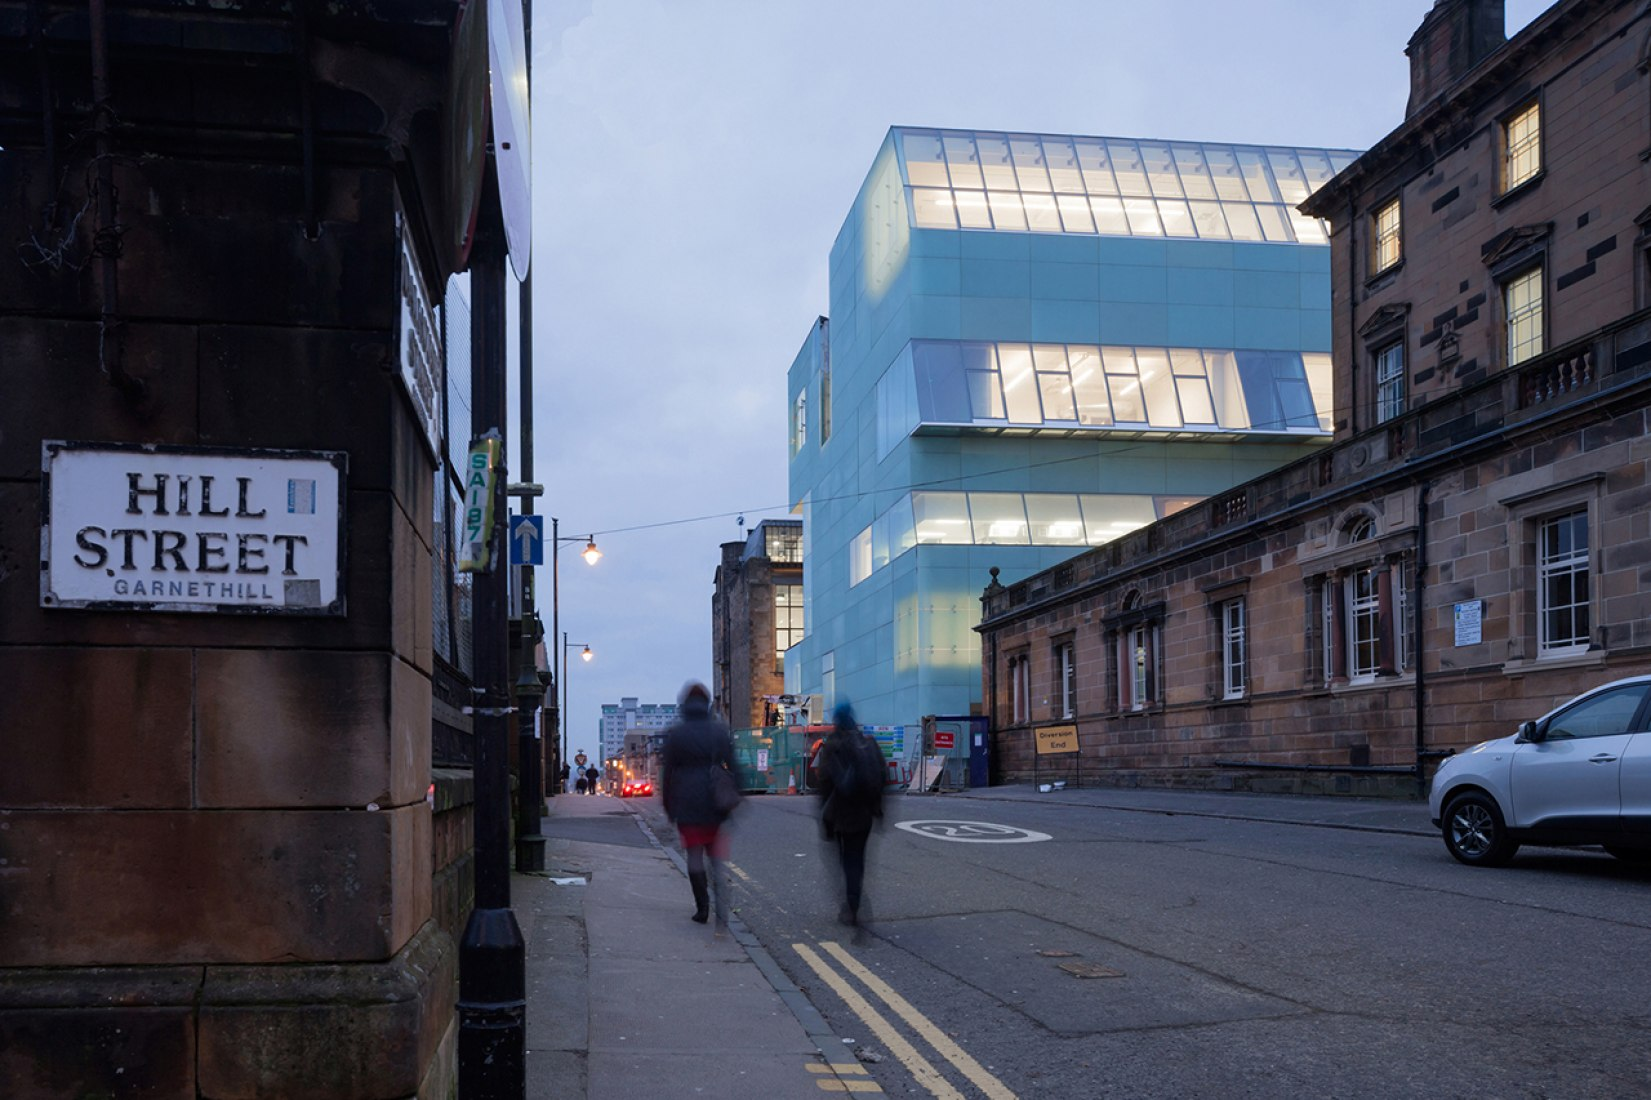 Steven Holl has designed a contemporary addition to the Glasgow School of Art's campus.